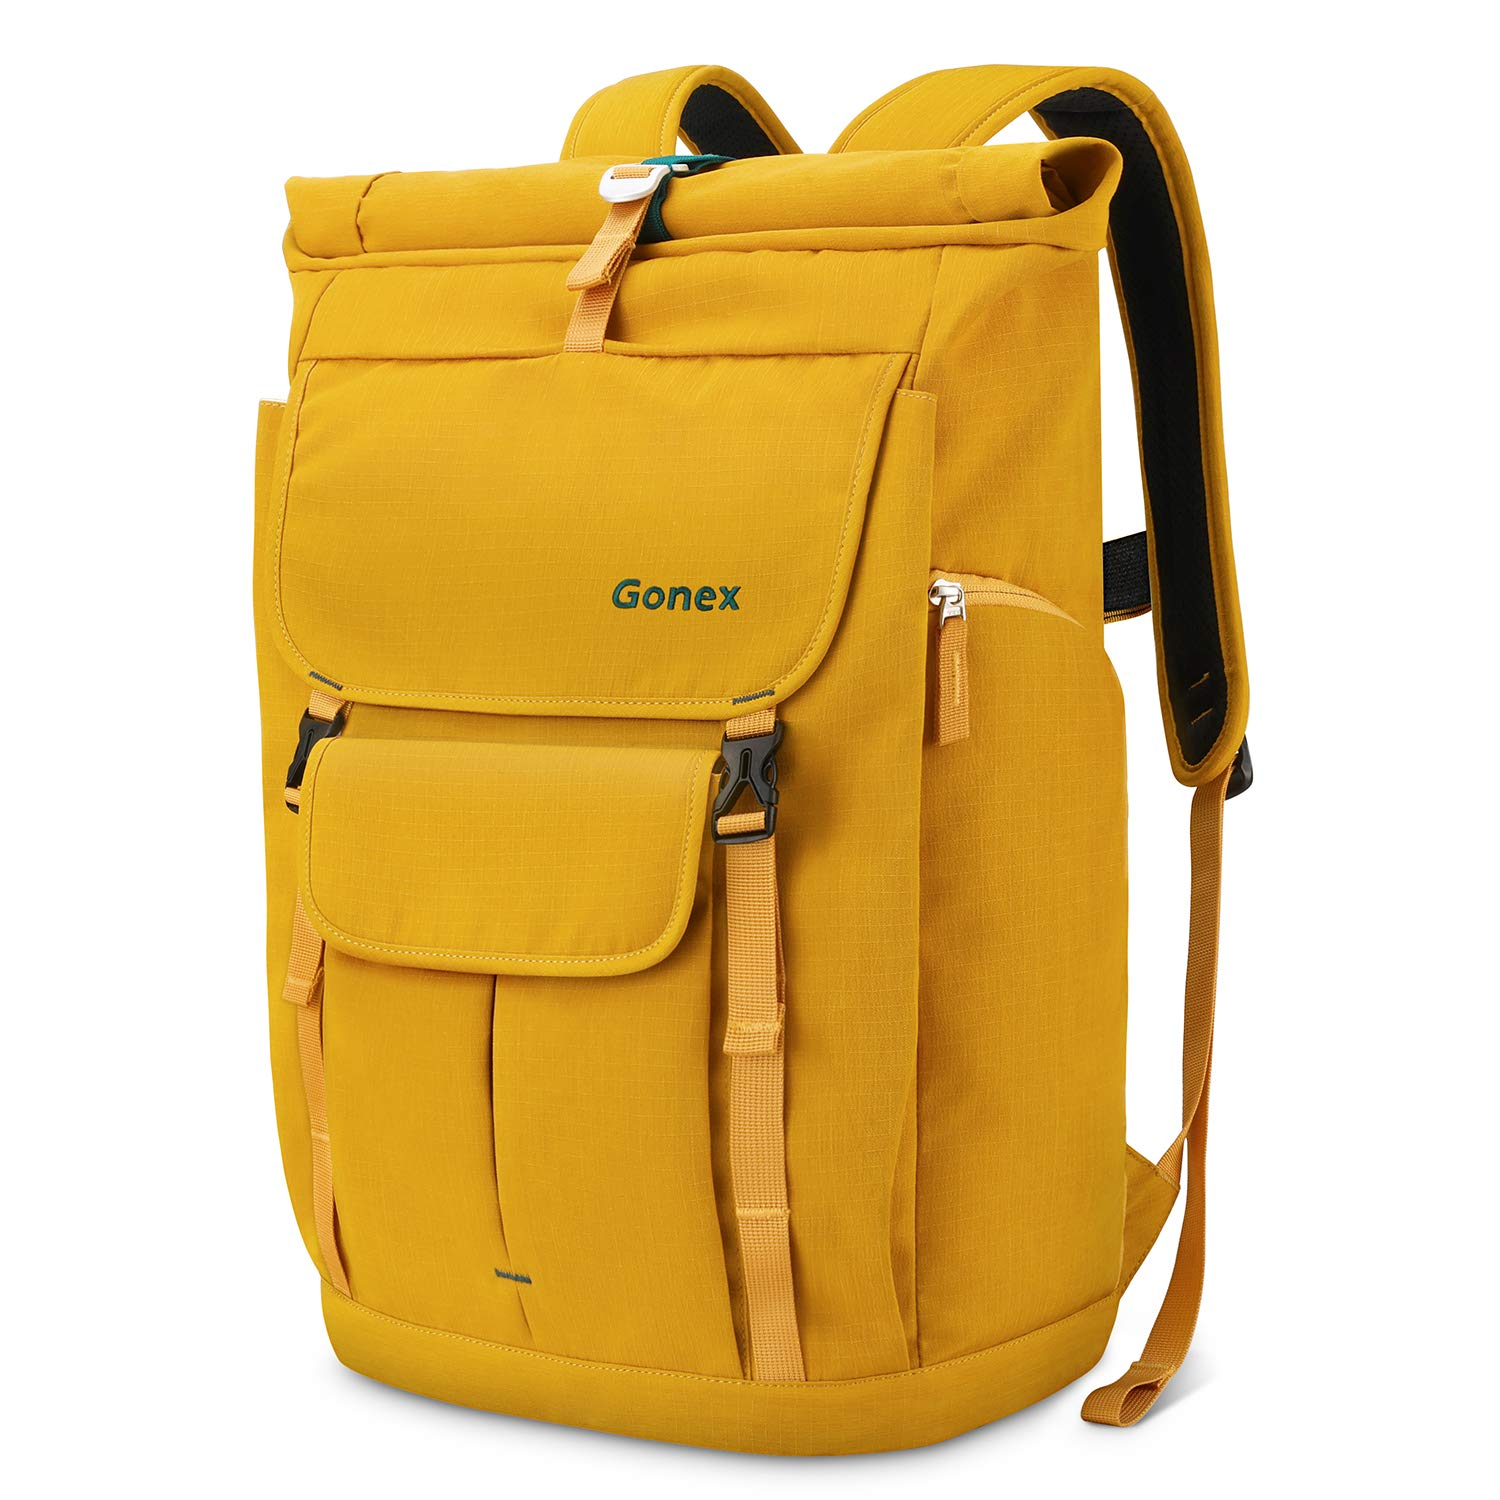 Gonex Travel Laptop Backpack, 30L Casual Roll Top Durable Rolltop Backpack Daypacks for Men Women for Work Office College Students Business Travel Schoolbag Bookbag fits 14 Inch Laptop Yellow by Gonex